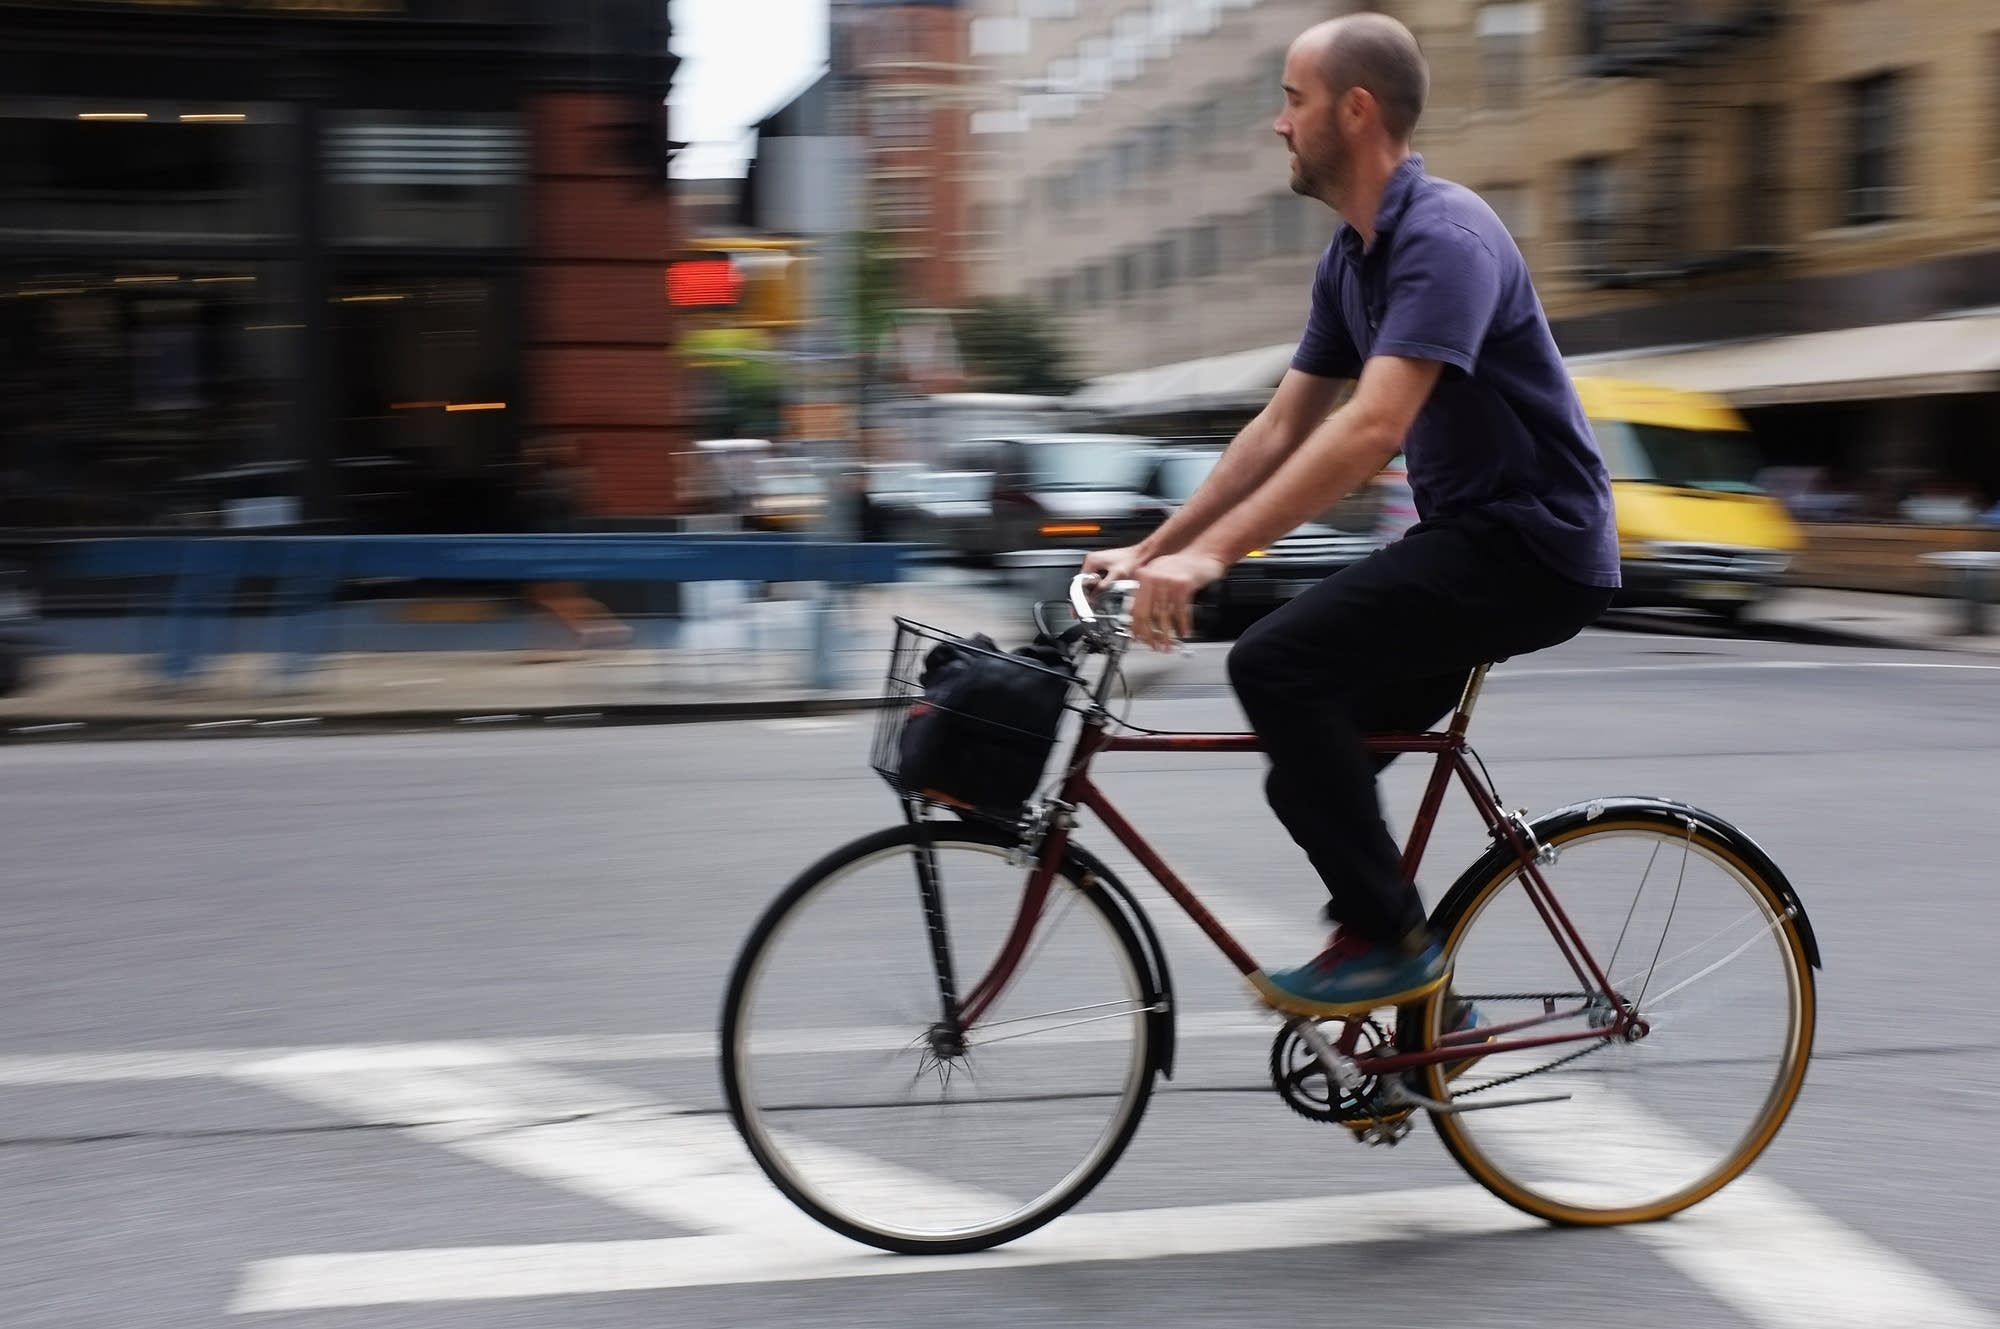 A man rides a bicycle along a Manhattan street.